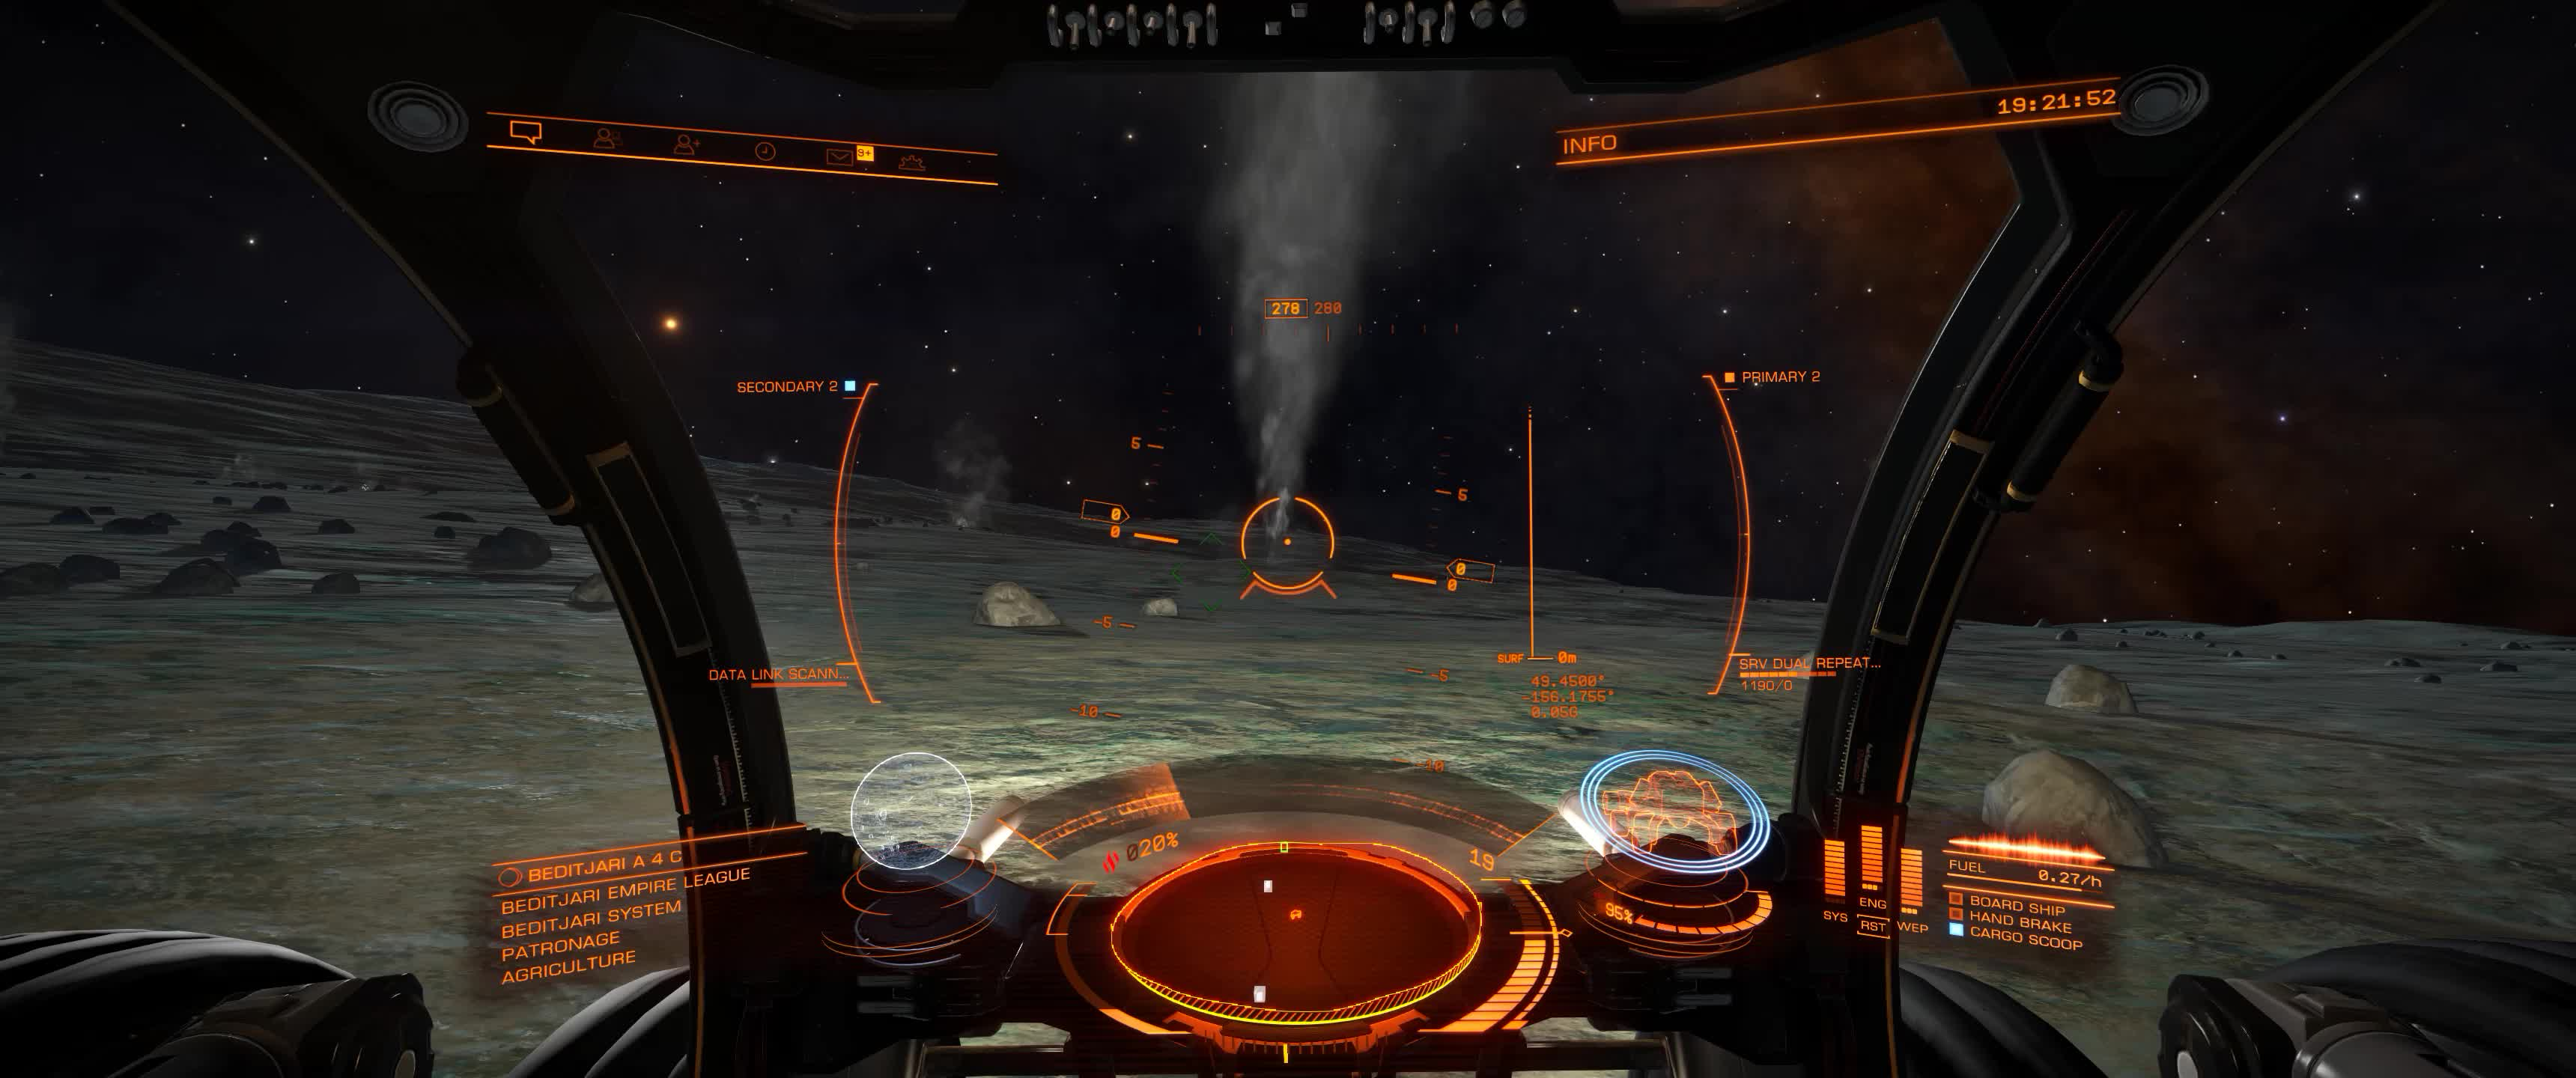 elitedangerous, vlc-record-2018-12-08-12h24m48s-Elite Dangerous 2018.12.08 - 12.23.51.02.DVR.mp4- GIFs